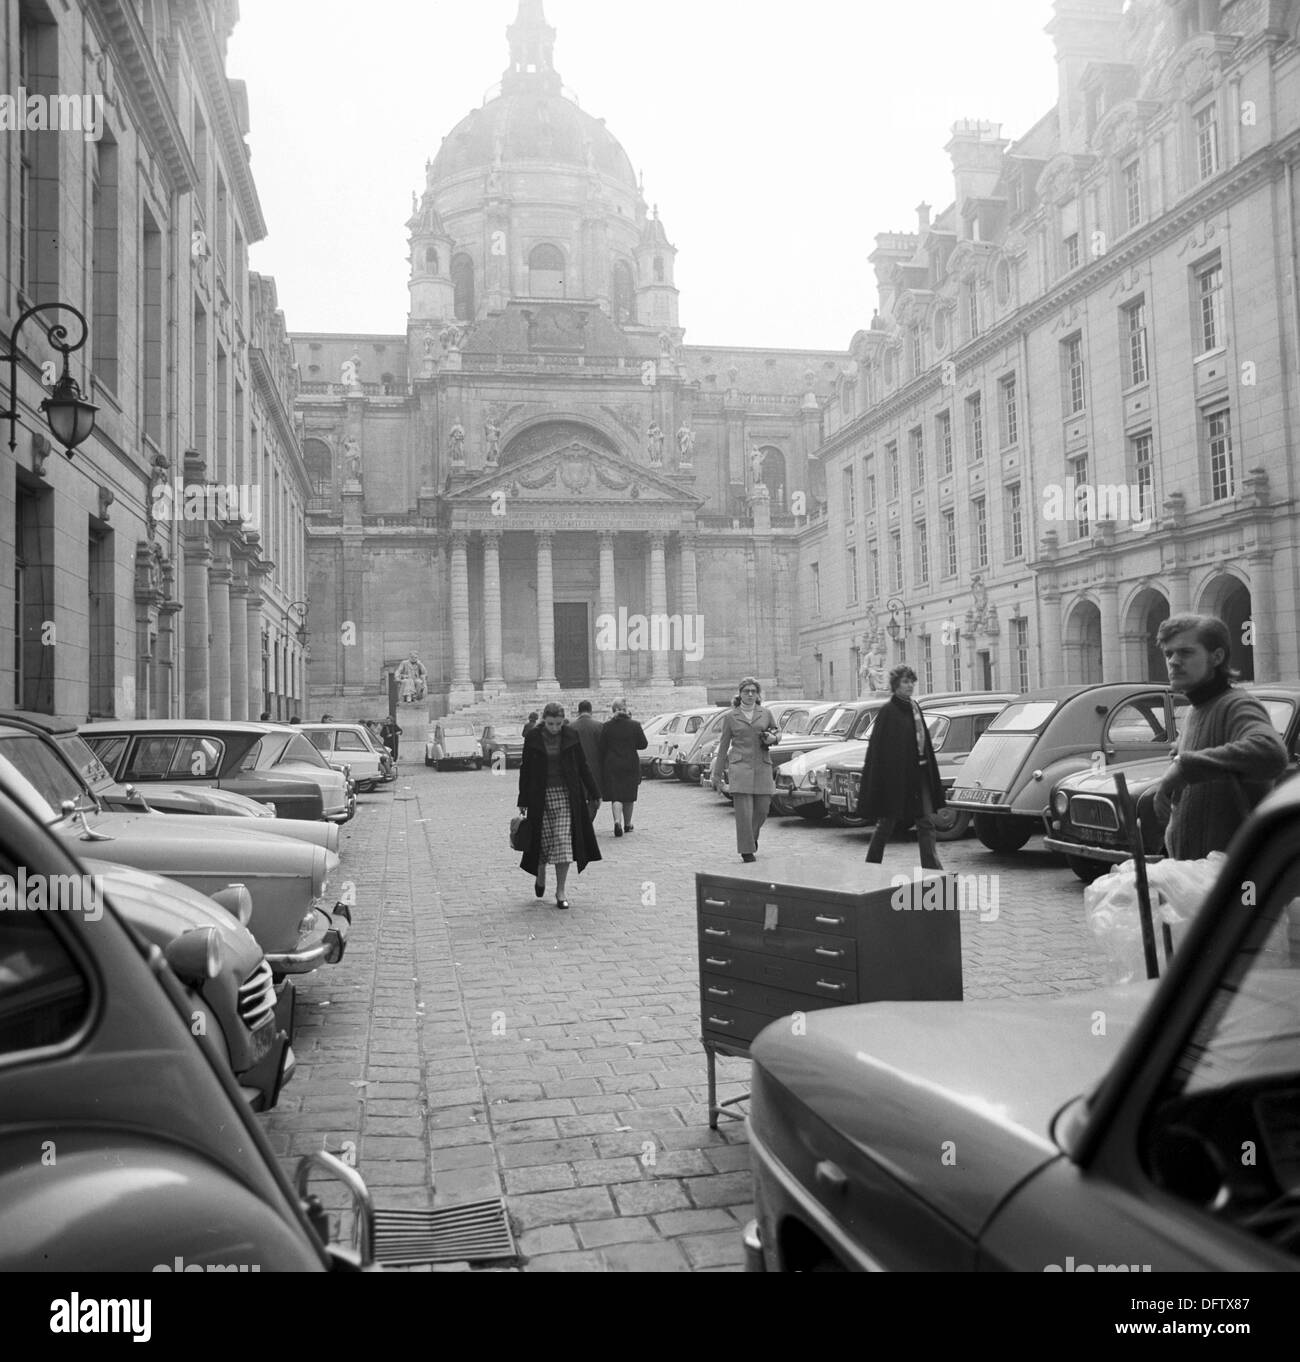 View over the Place de la Sorbonne at the Sorbonne University in the Quartier Latin in Paris, France, in November 1970. The Quartier Latin is the traditional student quarter in Paris and is located direclty at the Sorbonne University. Photo: Wilfried Glienke - Stock Image